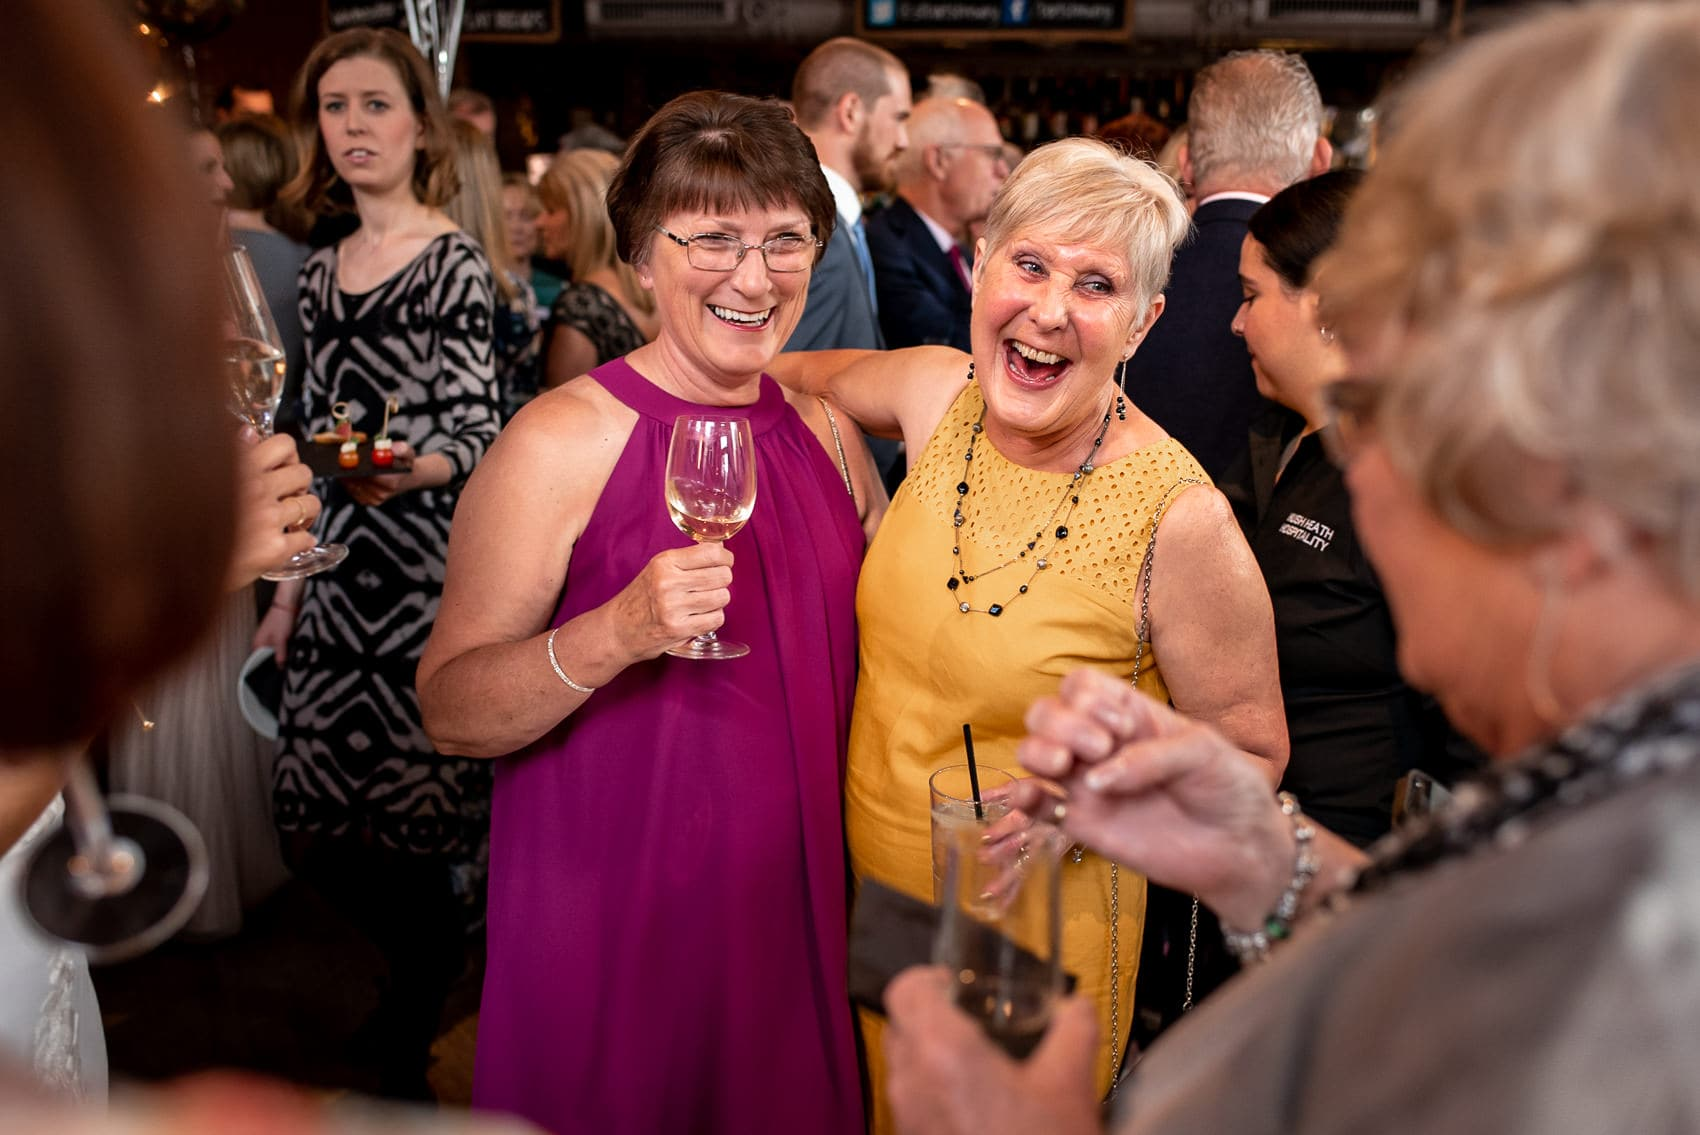 Wedding guests laughing and hugging at a St Barts Brewery wedding in London